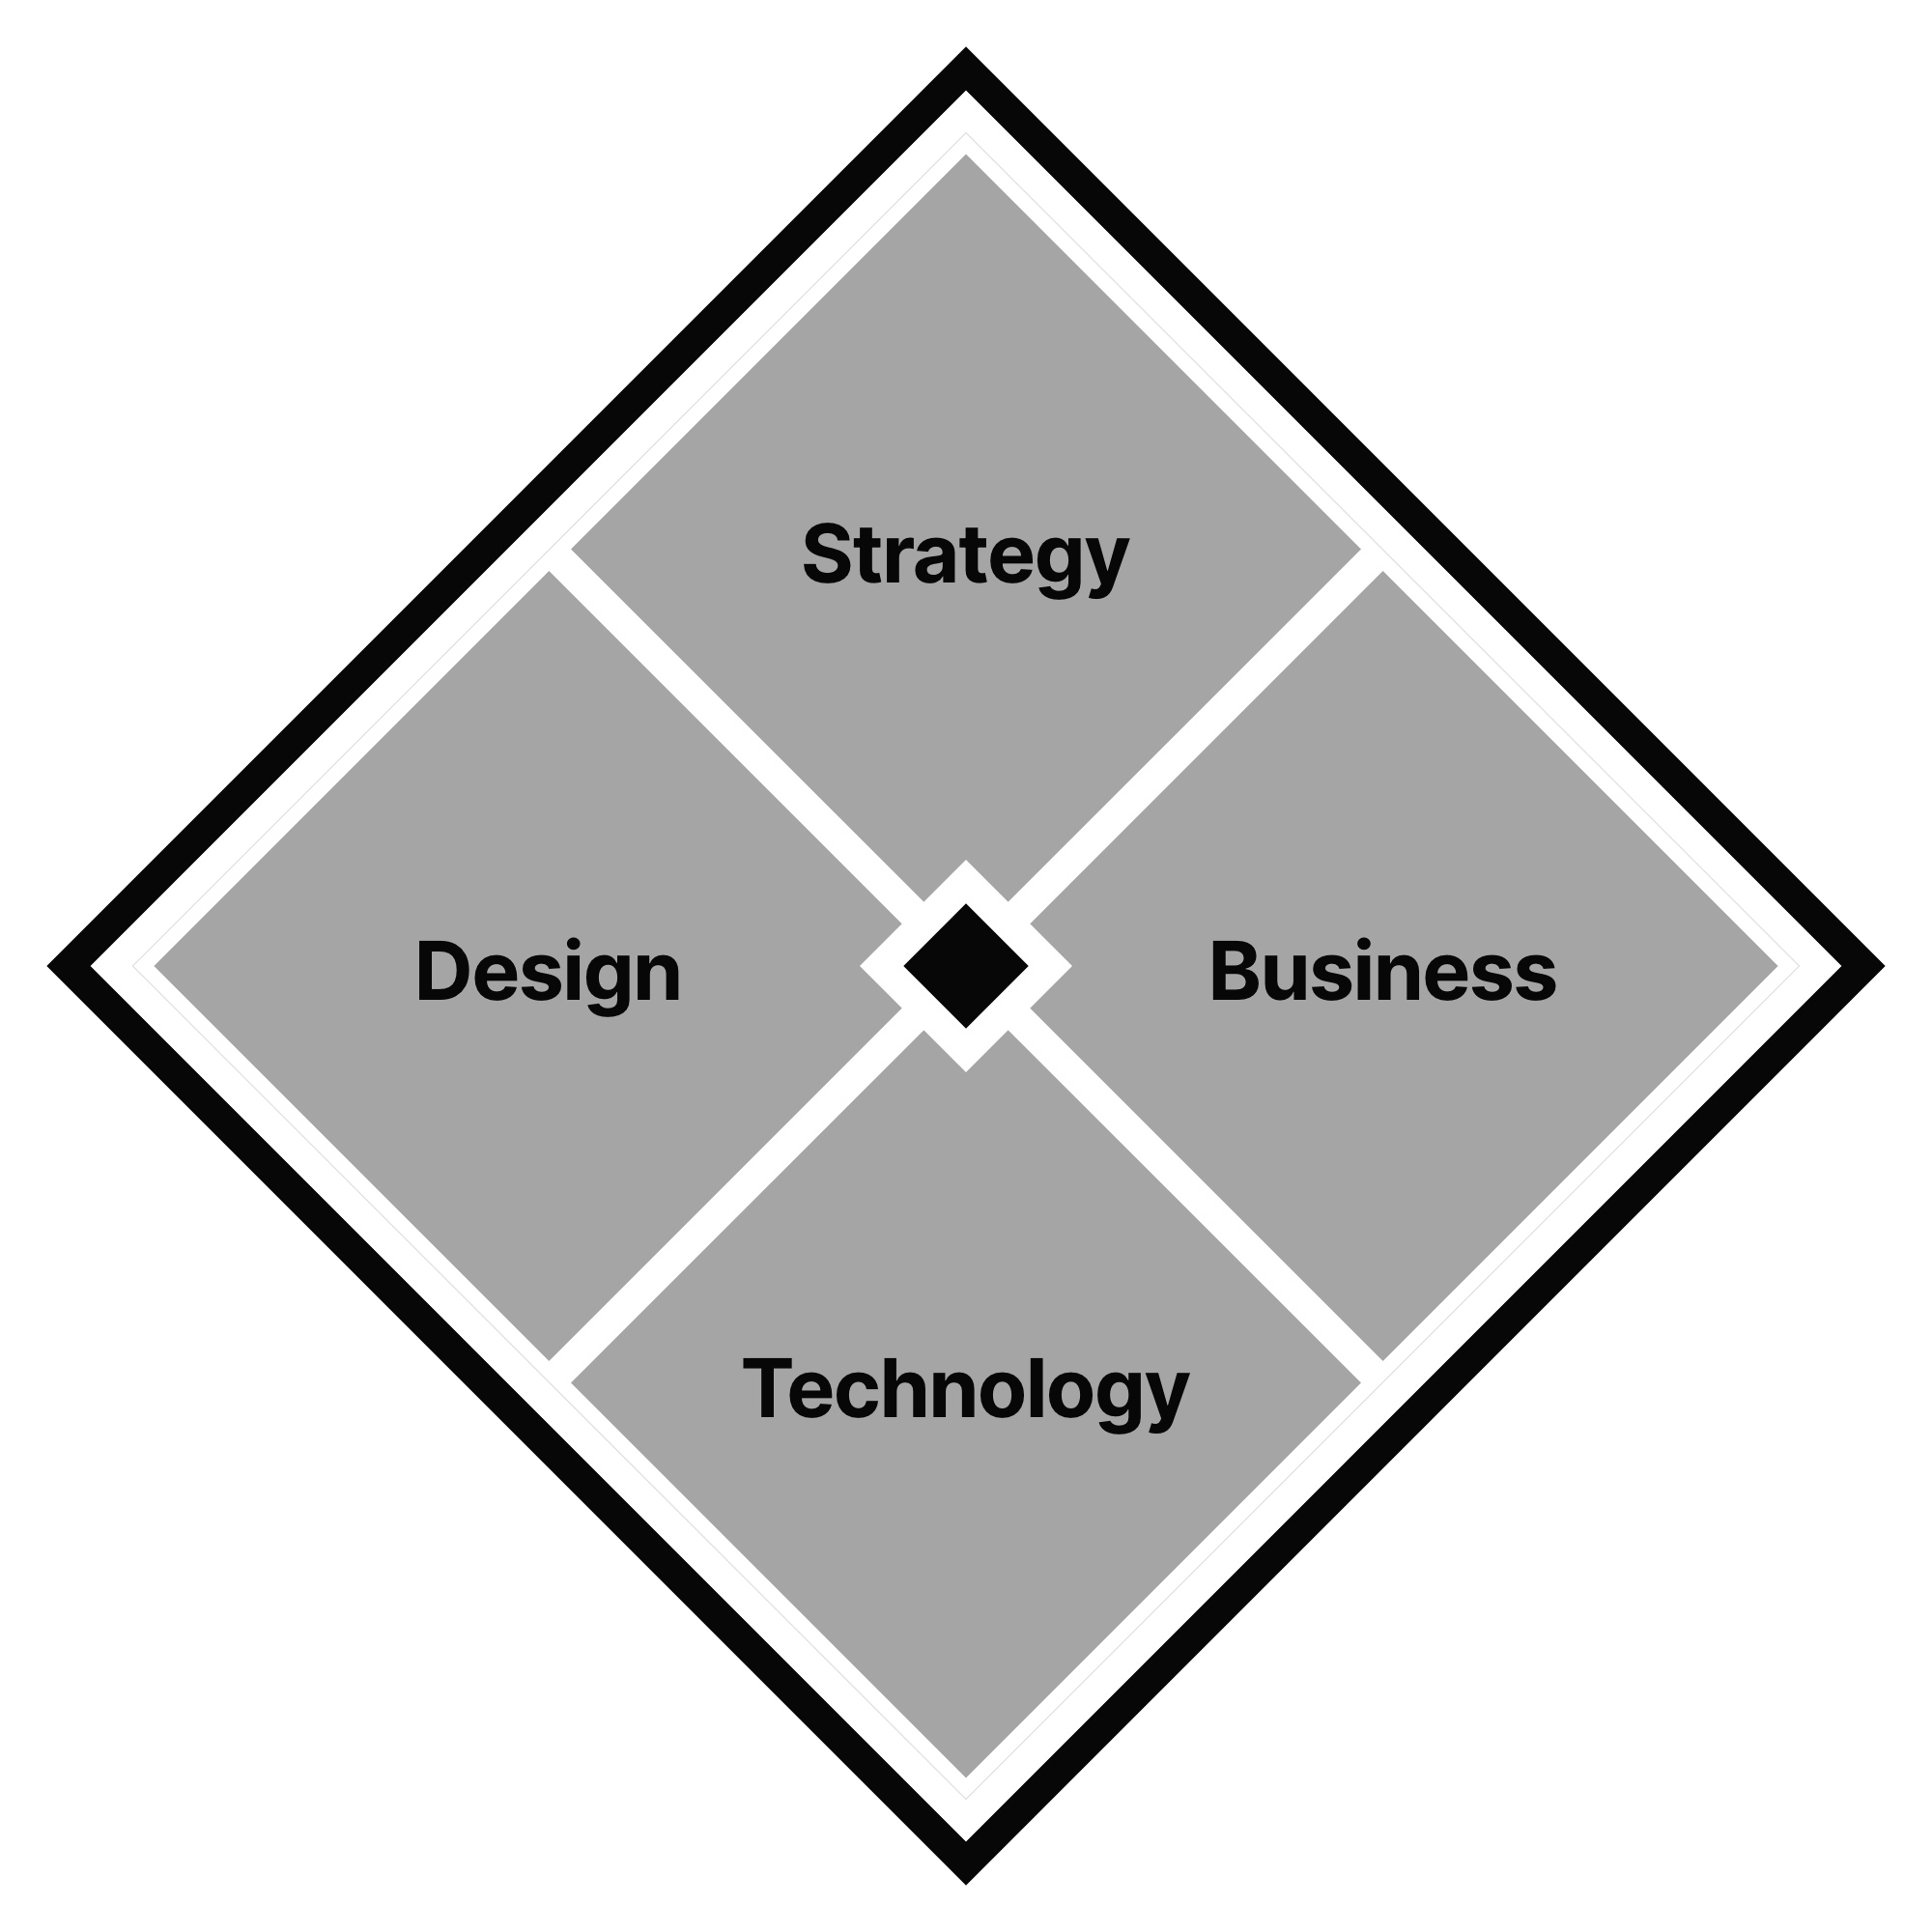 Diagram showing focus at the intersection of strategy, design, business and technology